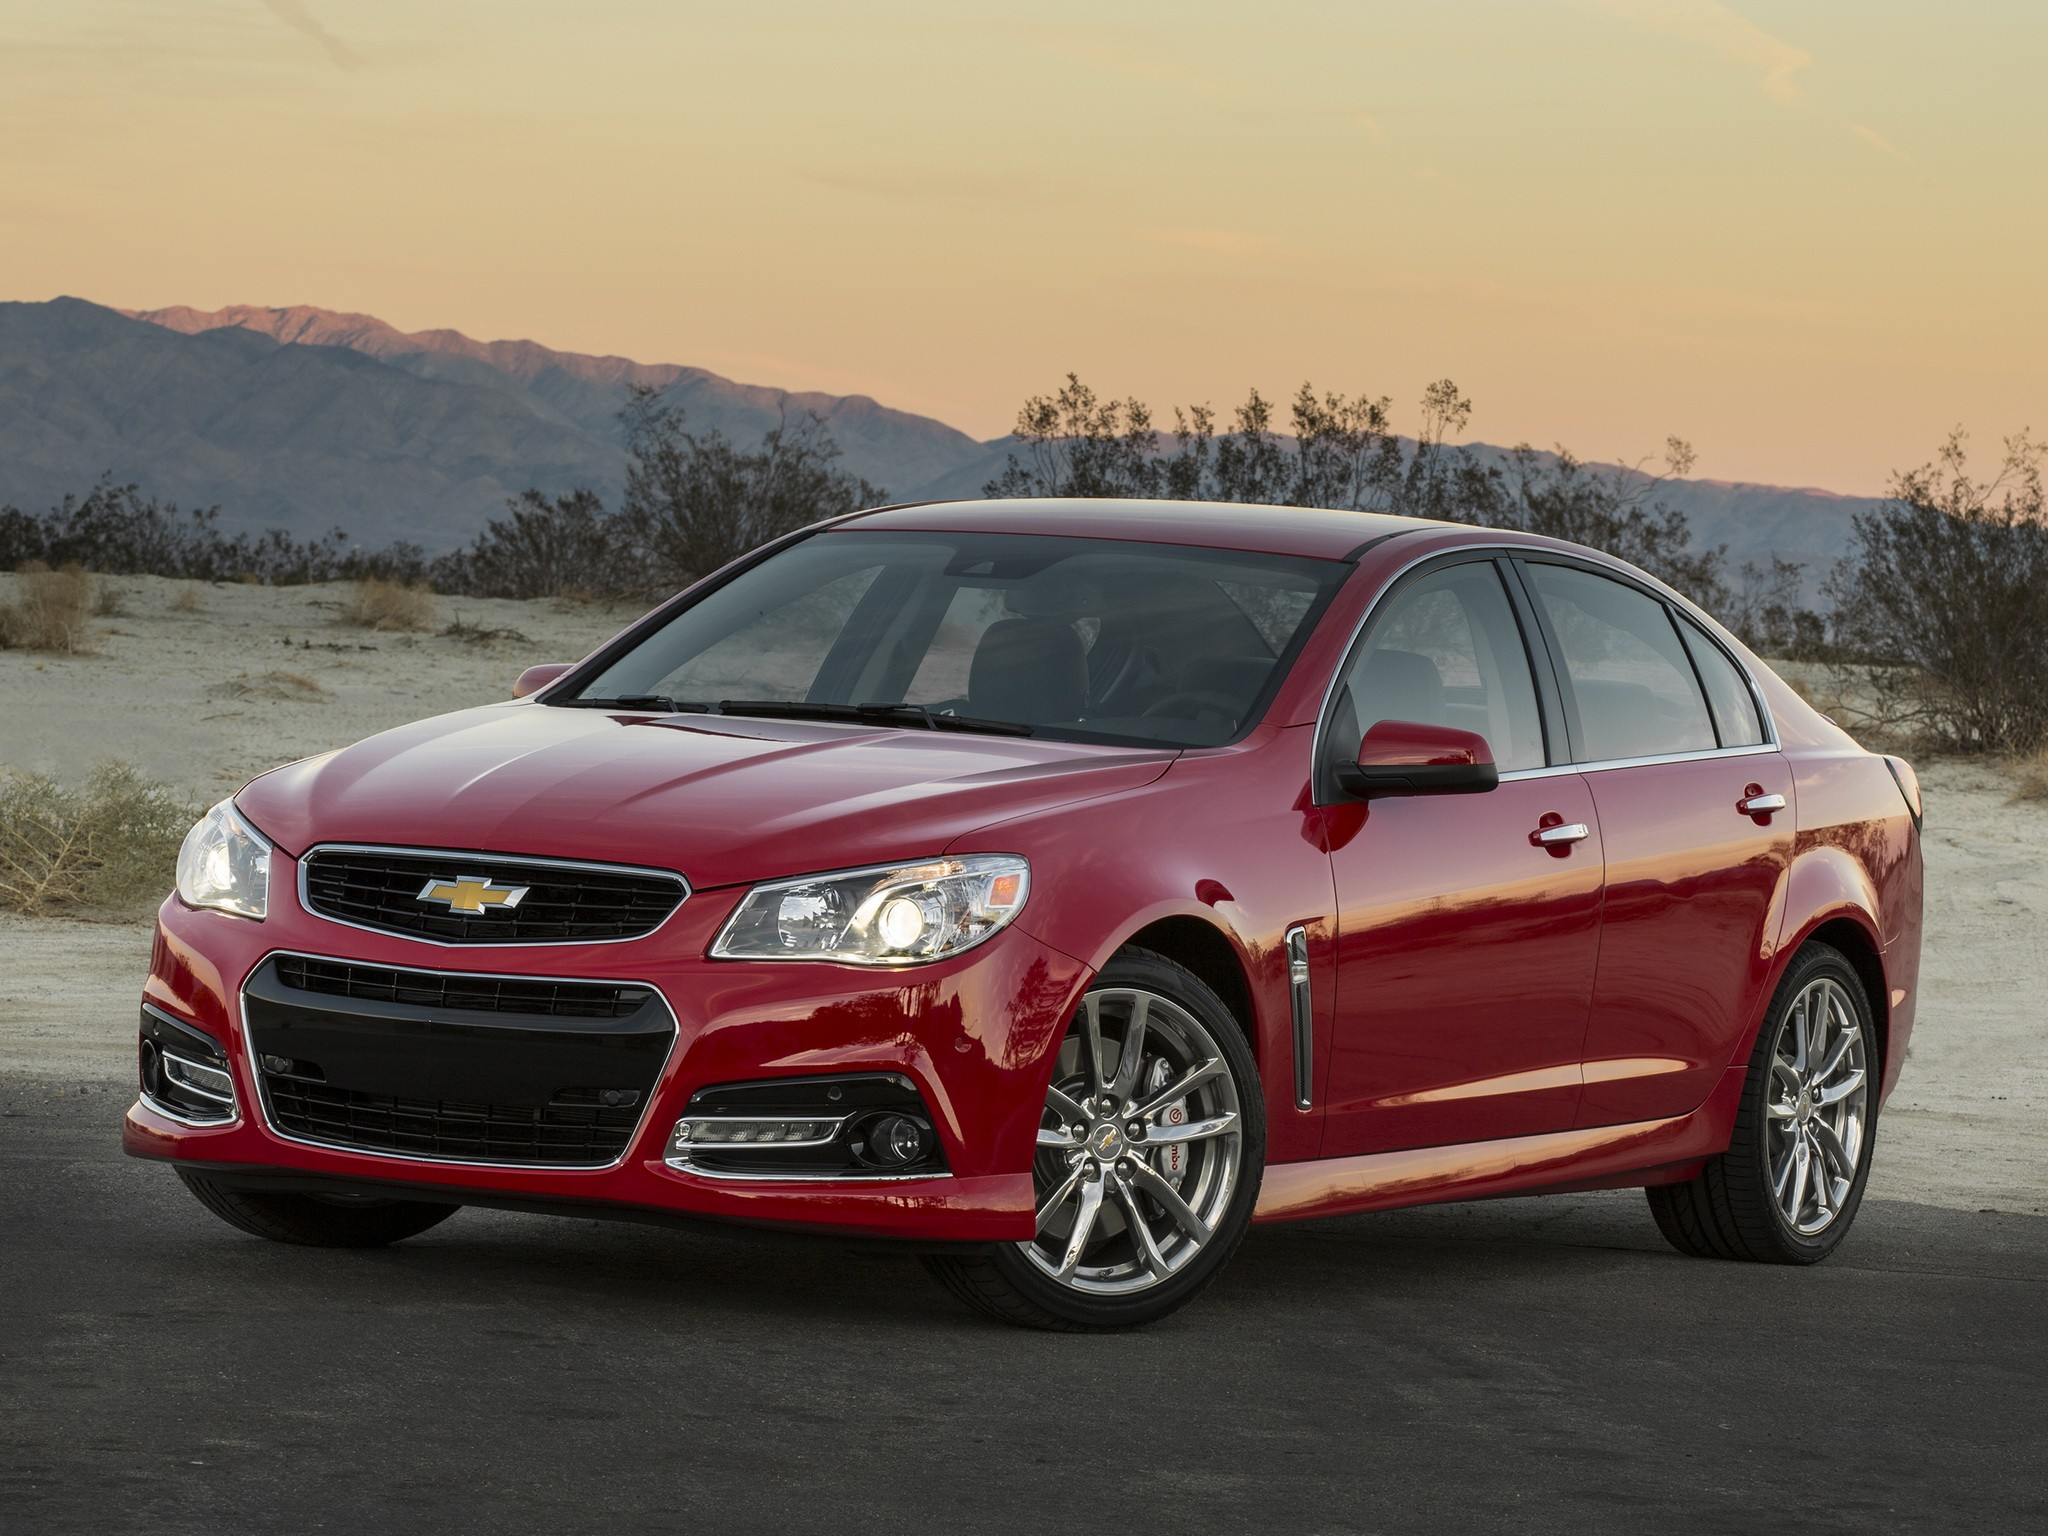 chevrolet ss specs 2013 2014 2015 2016 2017 2018 autoevolution. Black Bedroom Furniture Sets. Home Design Ideas